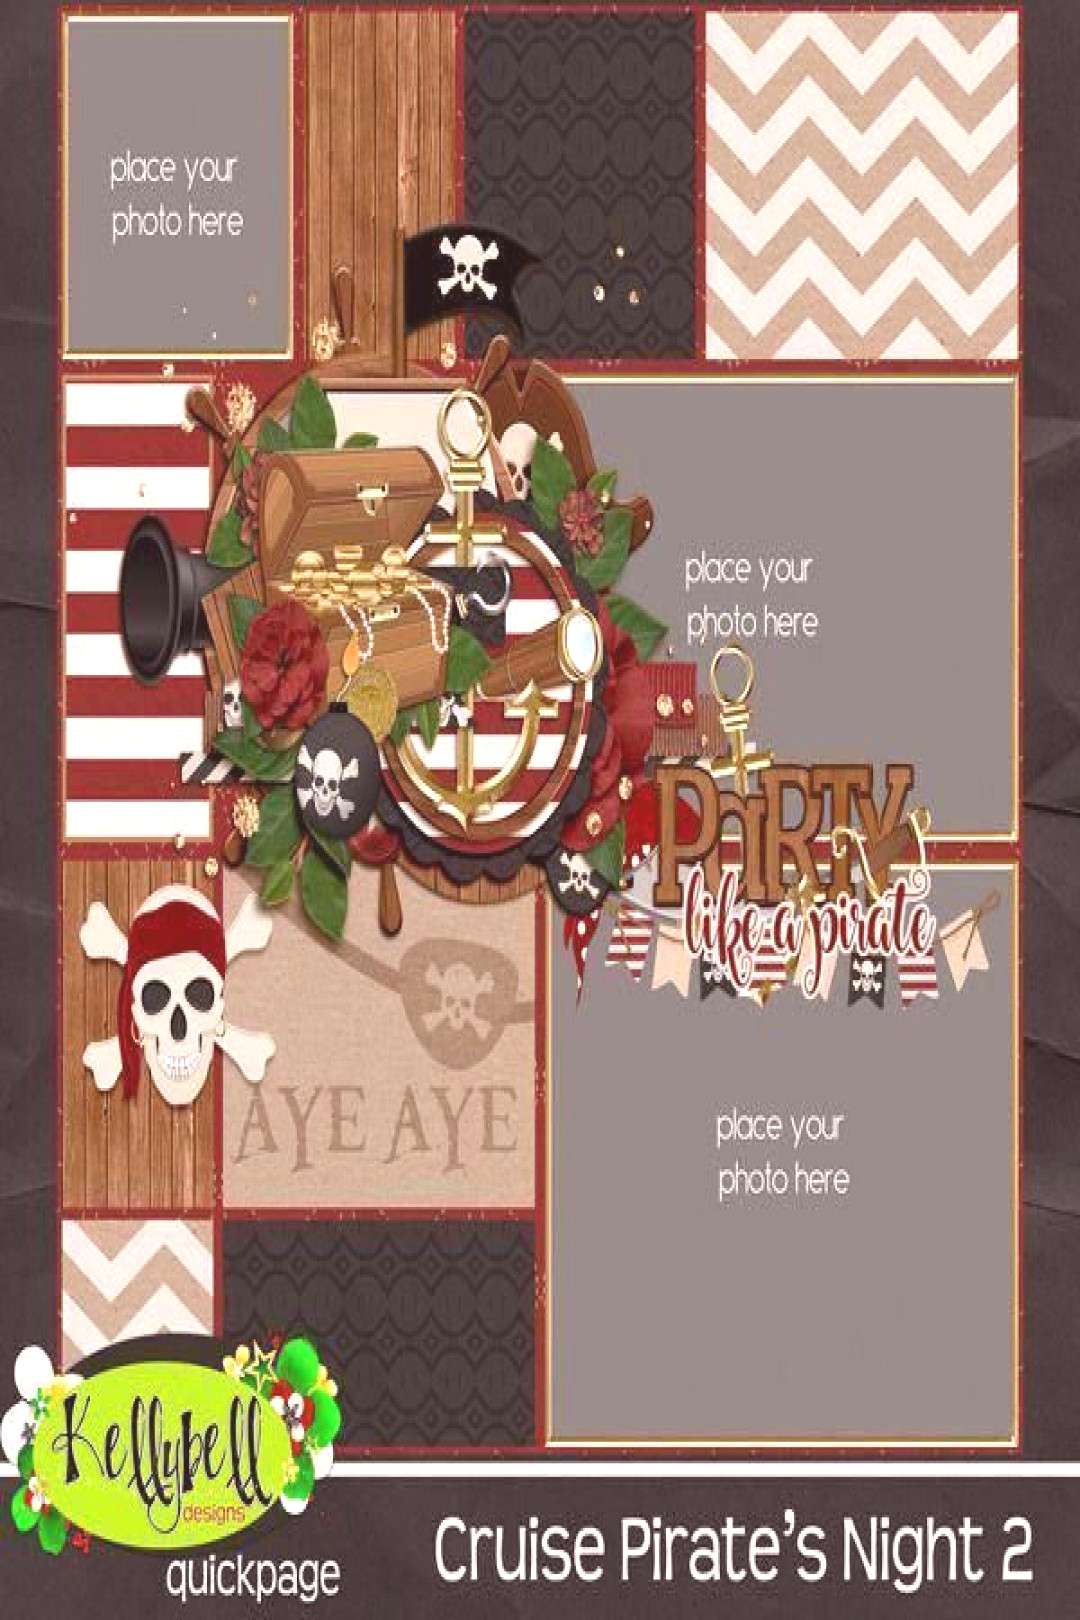 Cruise Pirate's Night 2 – Kellybell Designs - Digital scrapbooking kit for c... -